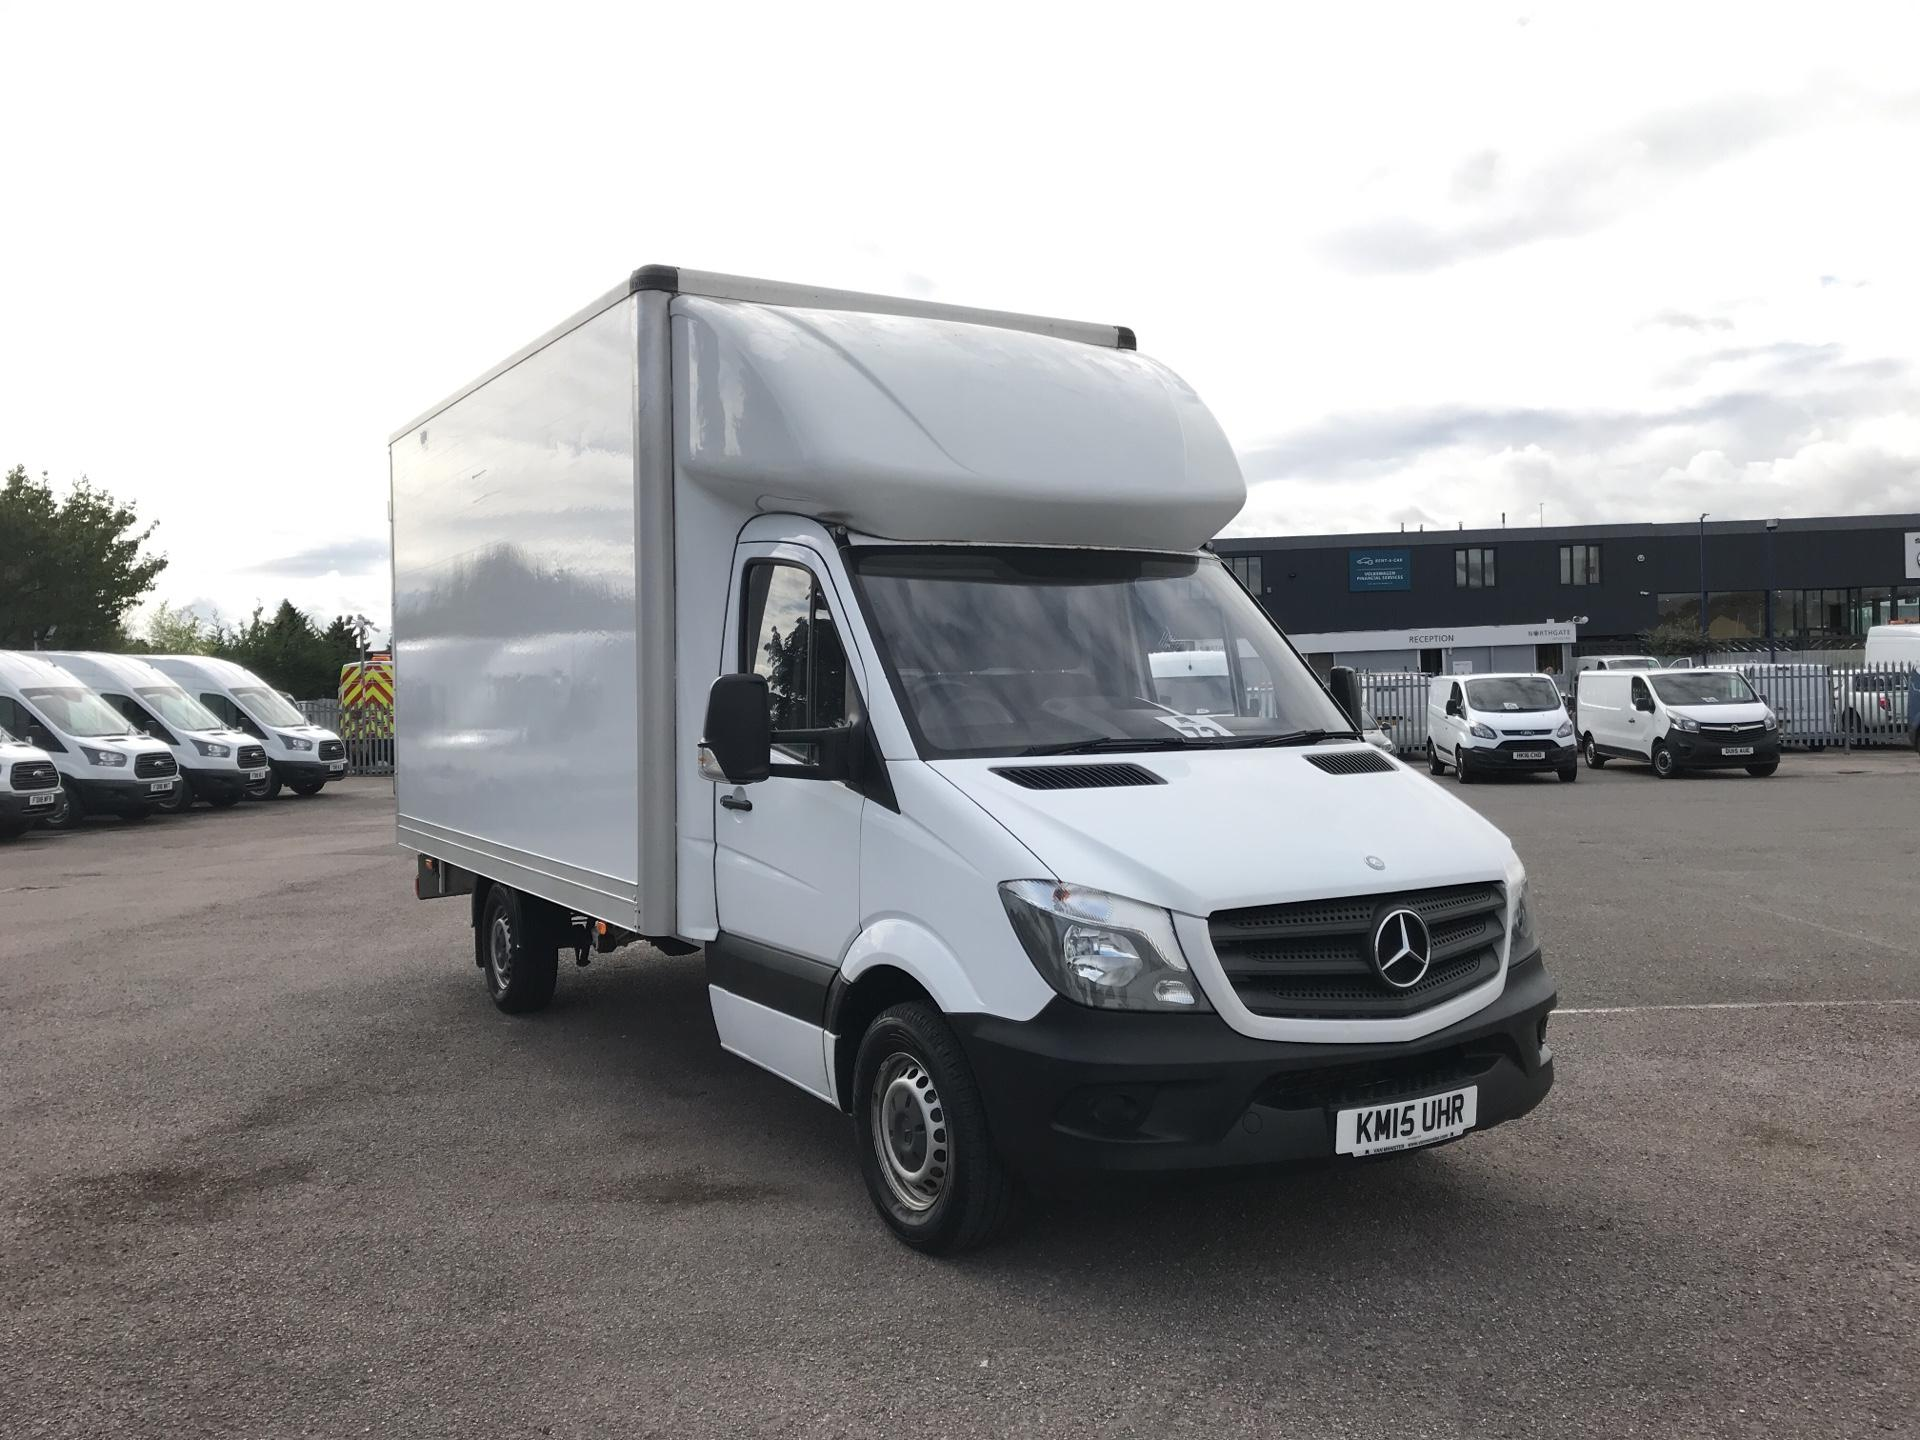 2015 Mercedes-Benz Sprinter  313 LWB LONG LUTON EURO 5*VALUE RANGE VEHICLE CONDITION REFLECTED IN PRICE* (KM15UHR)